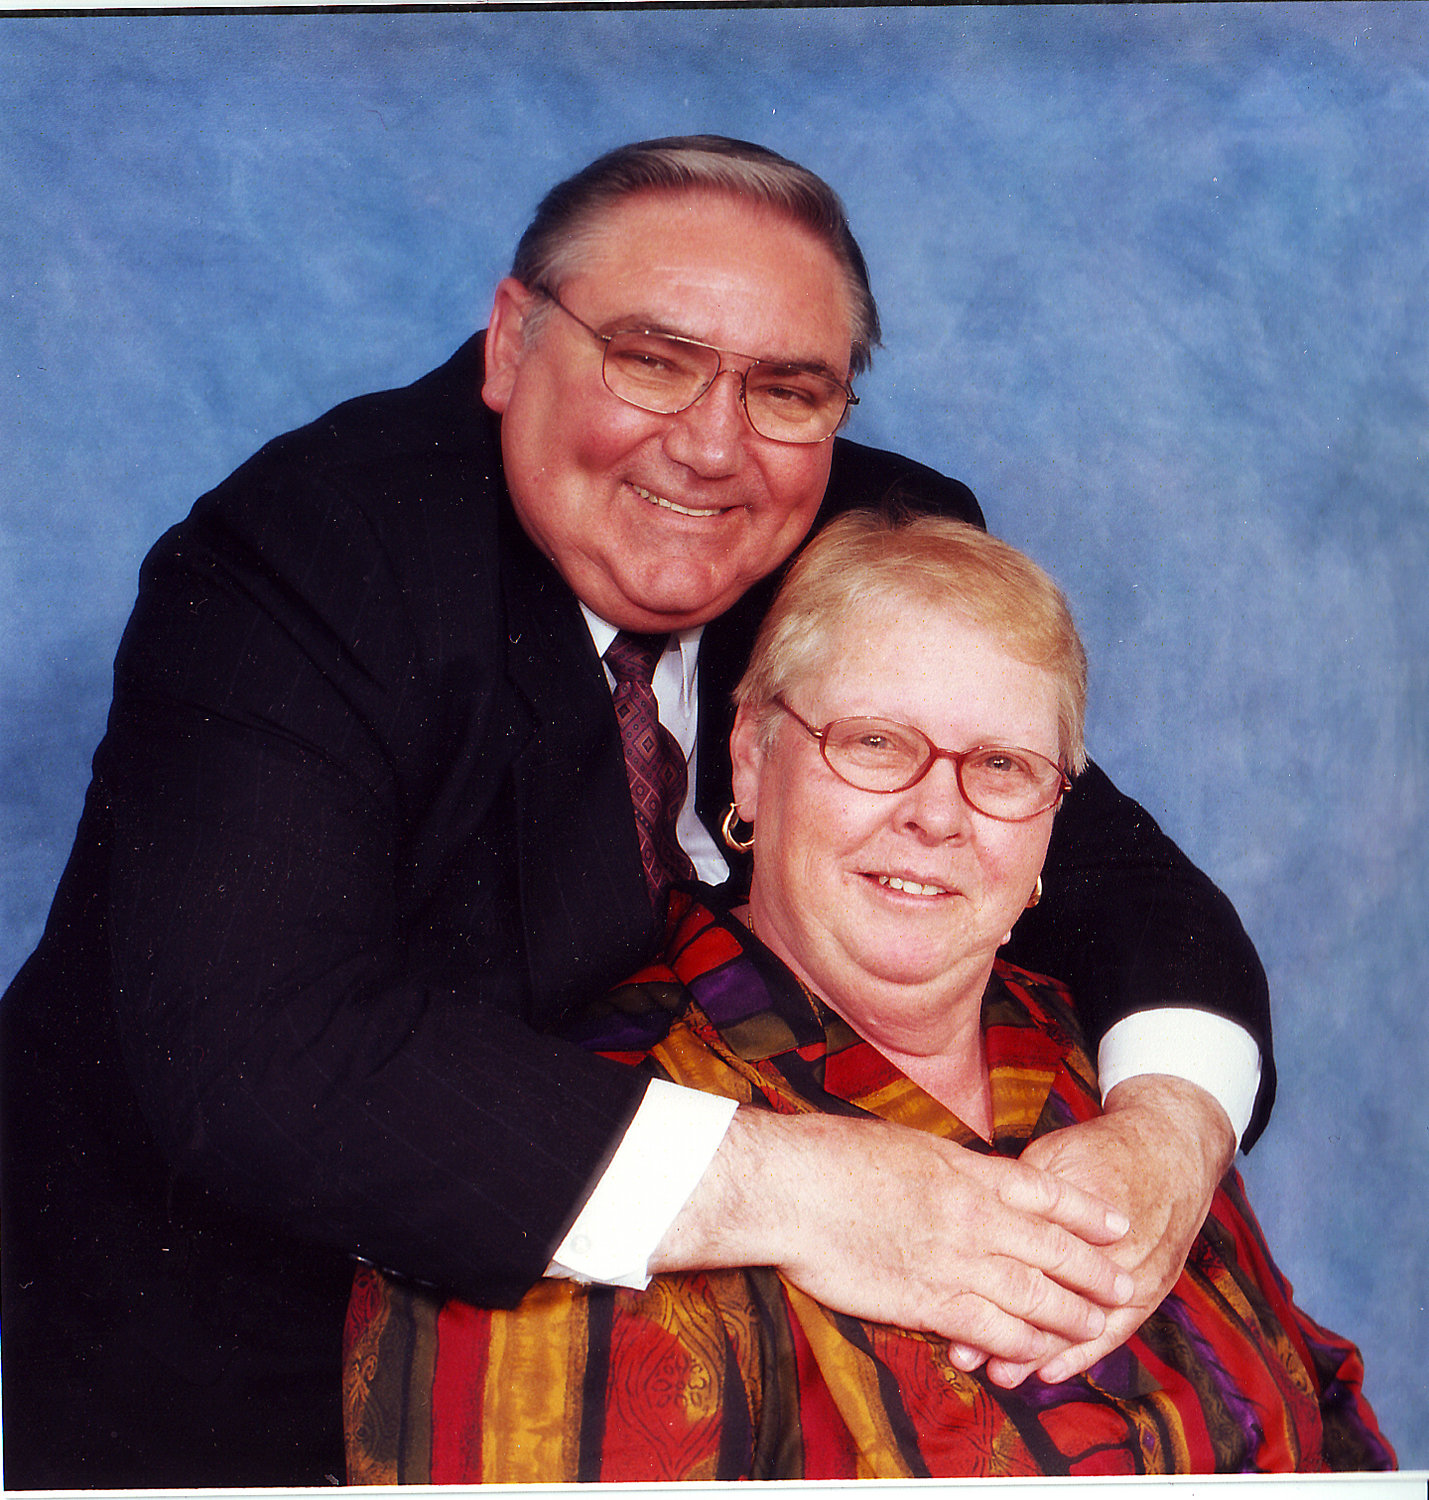 Patricia Skinner and her husband, Walter, had lived in East Meadow since 1965. After a long stretch of illnesses, Skinner died on Sept. 15, at age 79.